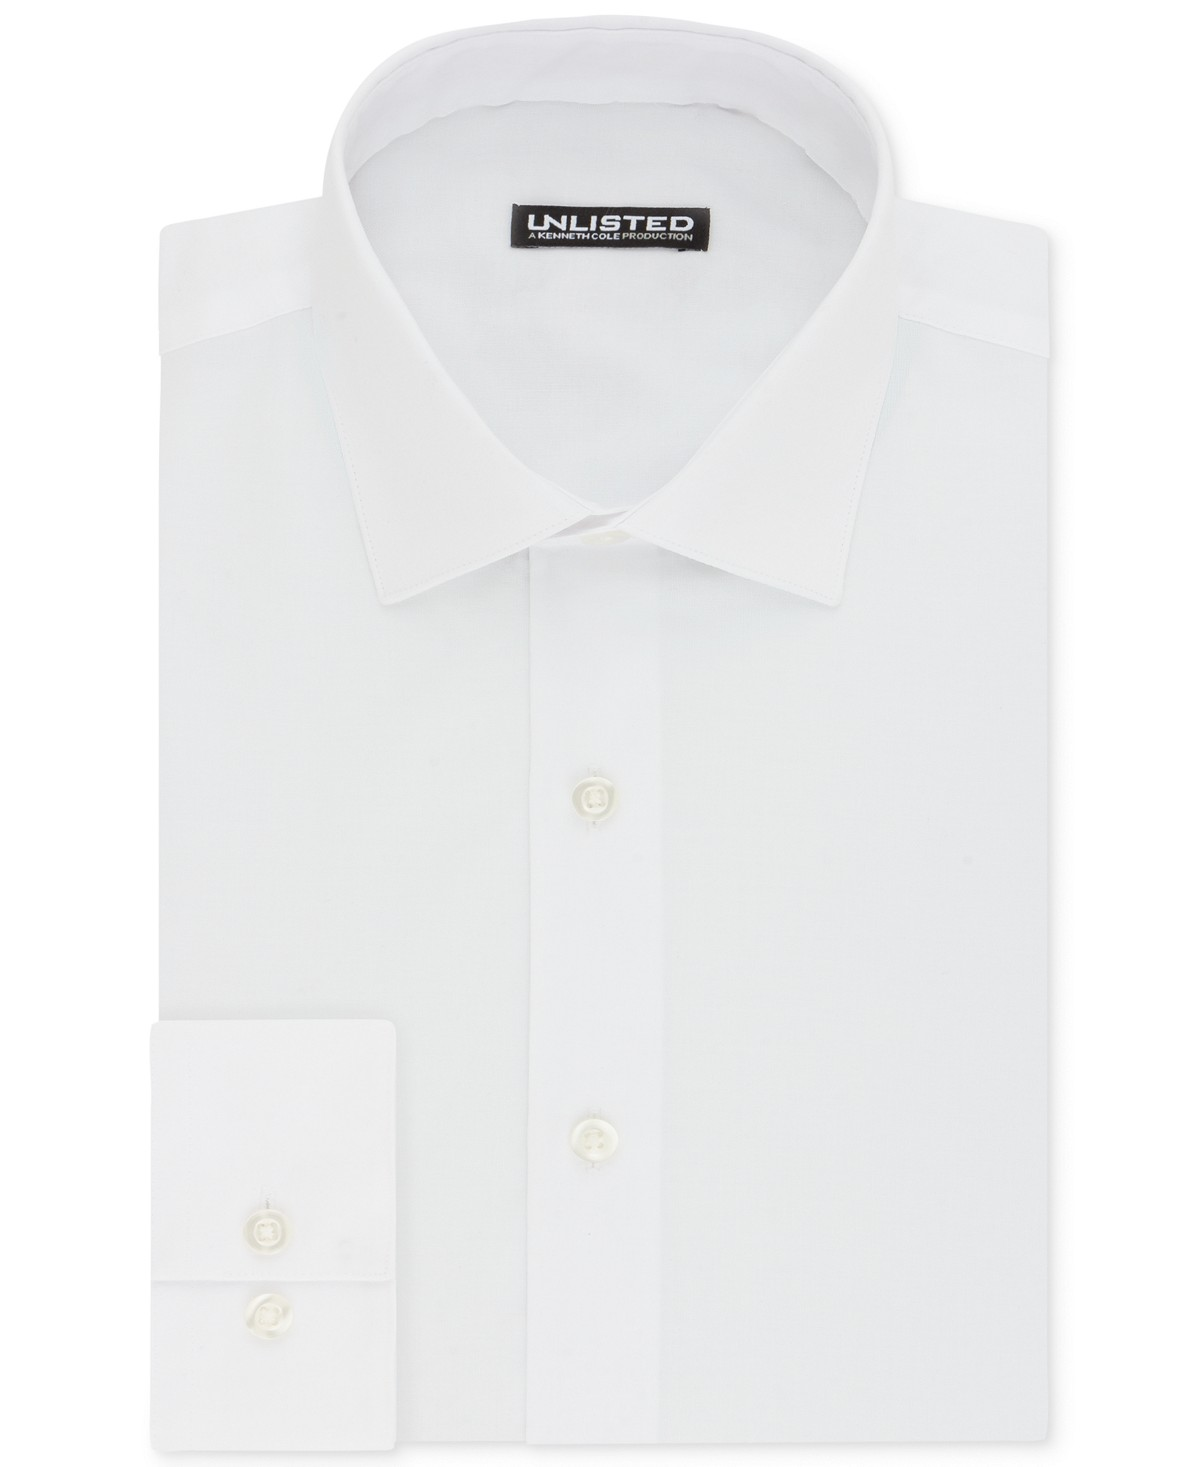 e2ebc0eb1 Macy's: Unlisted by Kenneth Cole Mens Slim-Fit Dress Shirt for ...